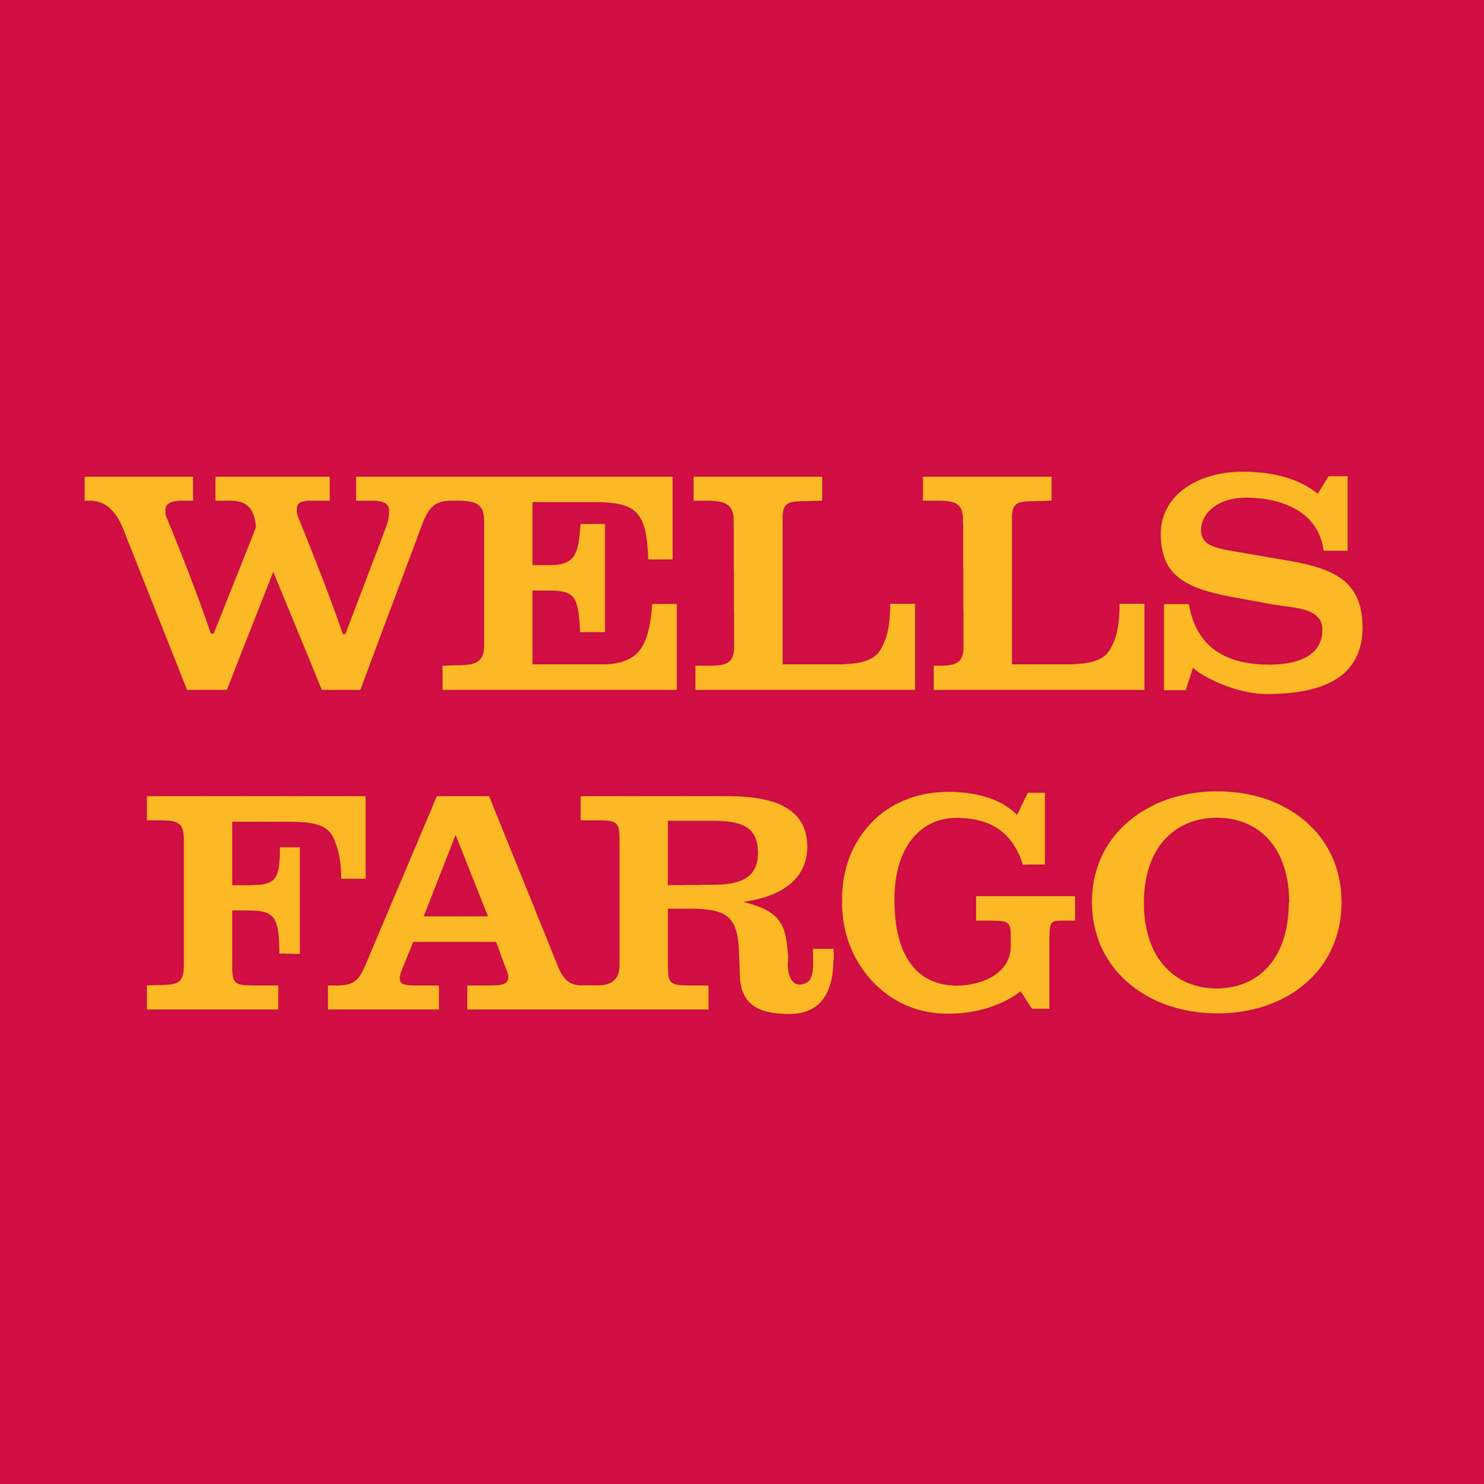 Wells Fargo color